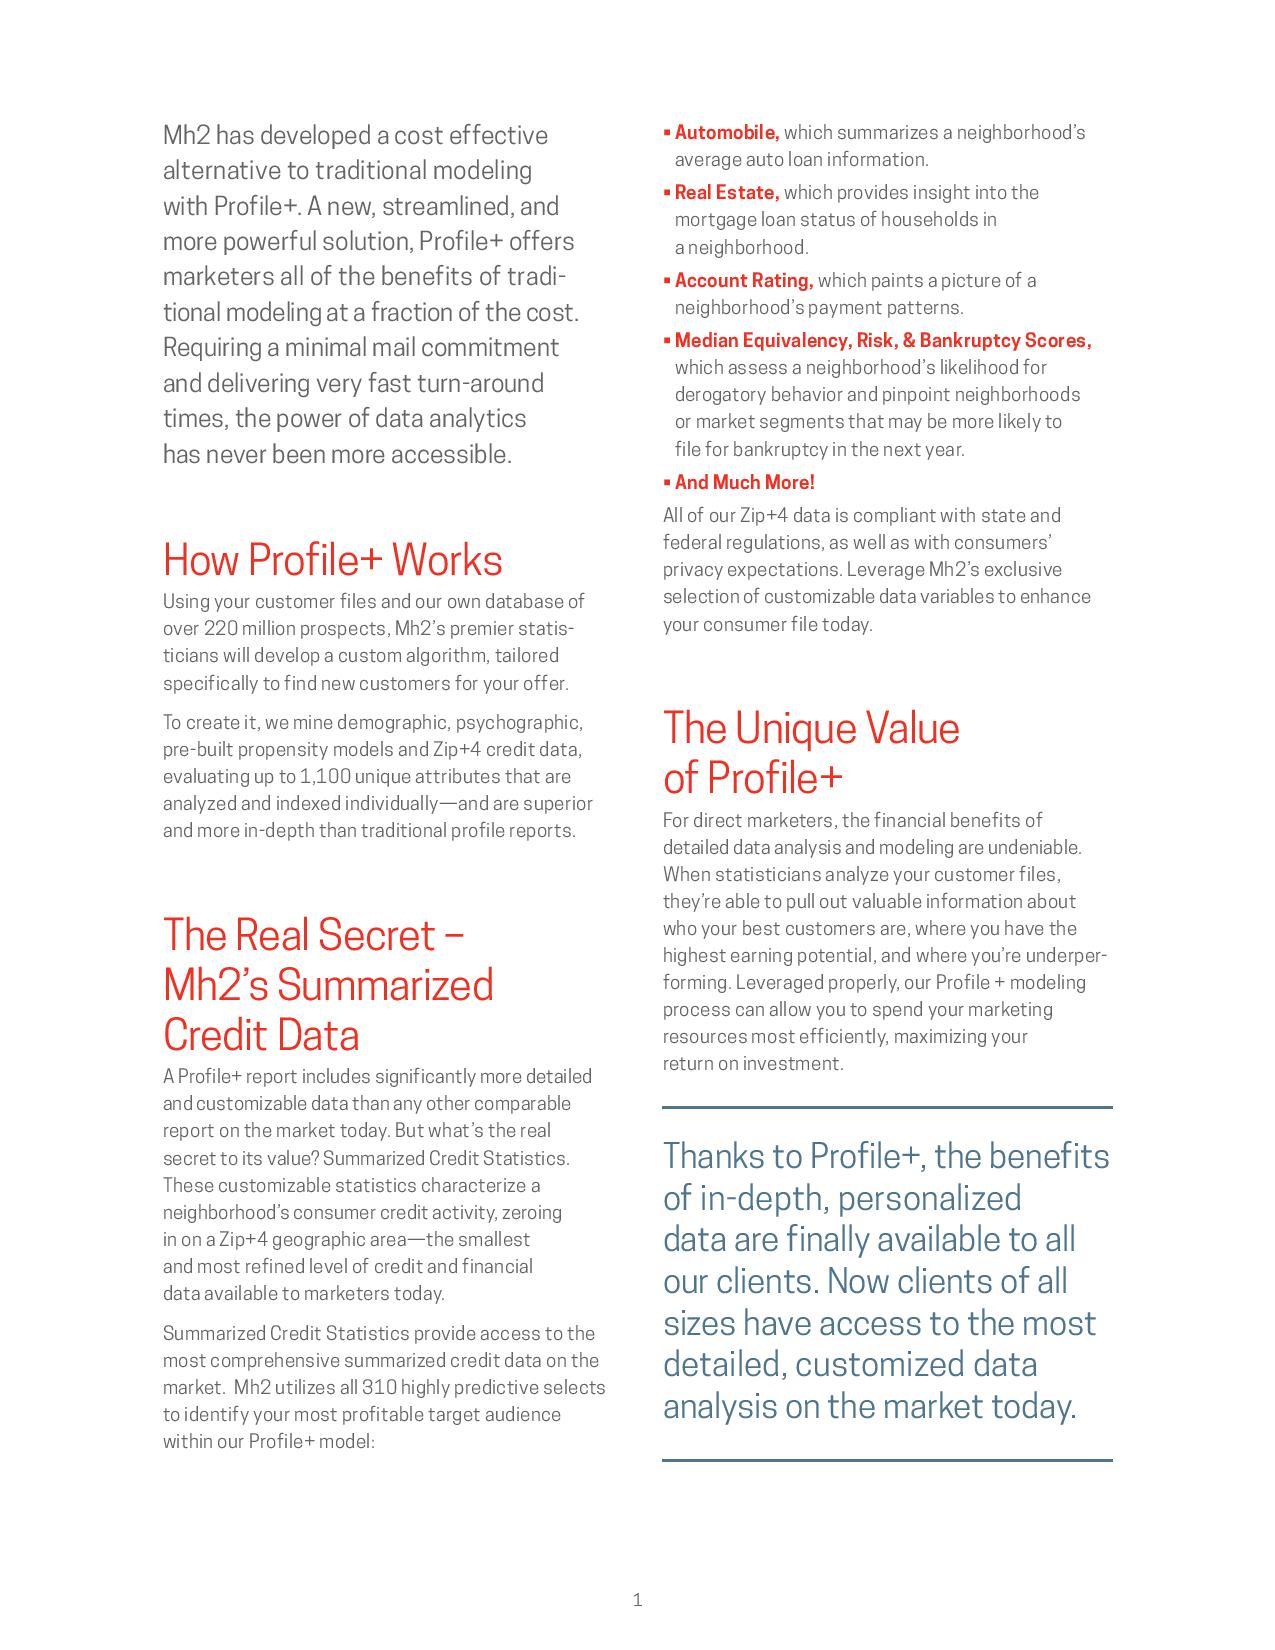 ALC_Mh2-Whitepaper-page-002.jpg